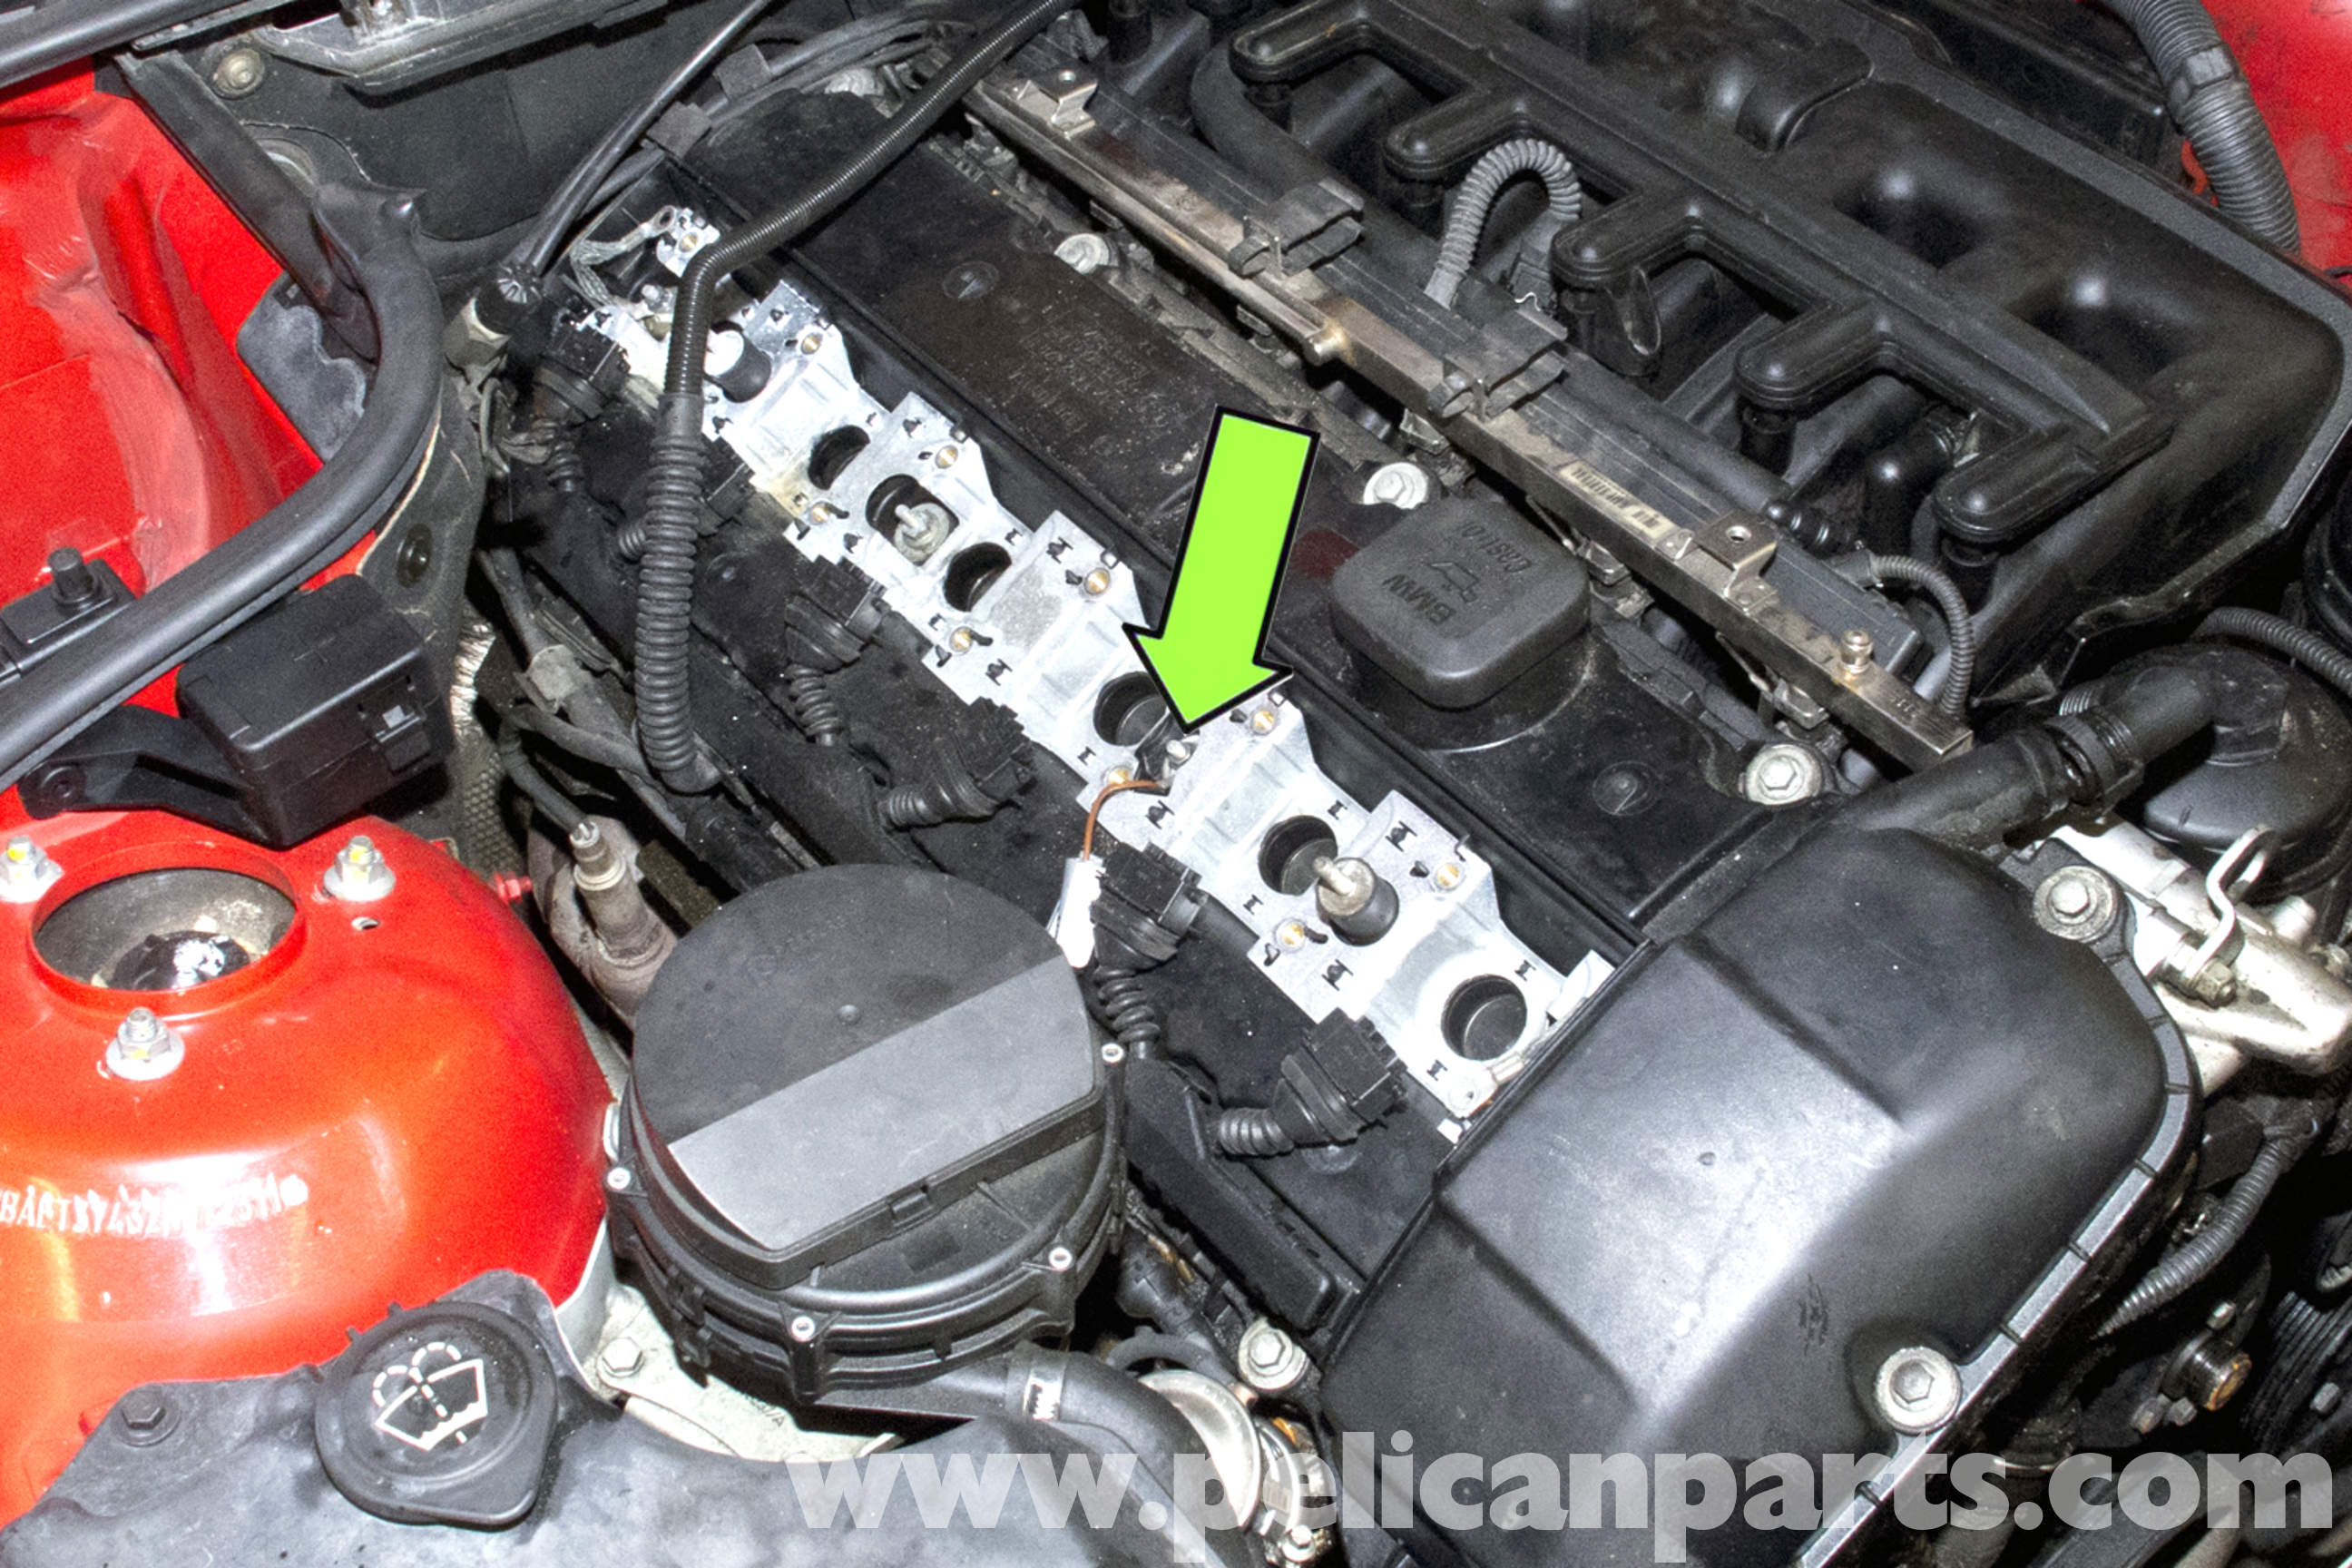 Bmw 740i Engine Diagram Another Blog About Wiring 7 Series Fuse Box E39 5 Valve Cover Gasket Removal 1997 2003 1998 740il